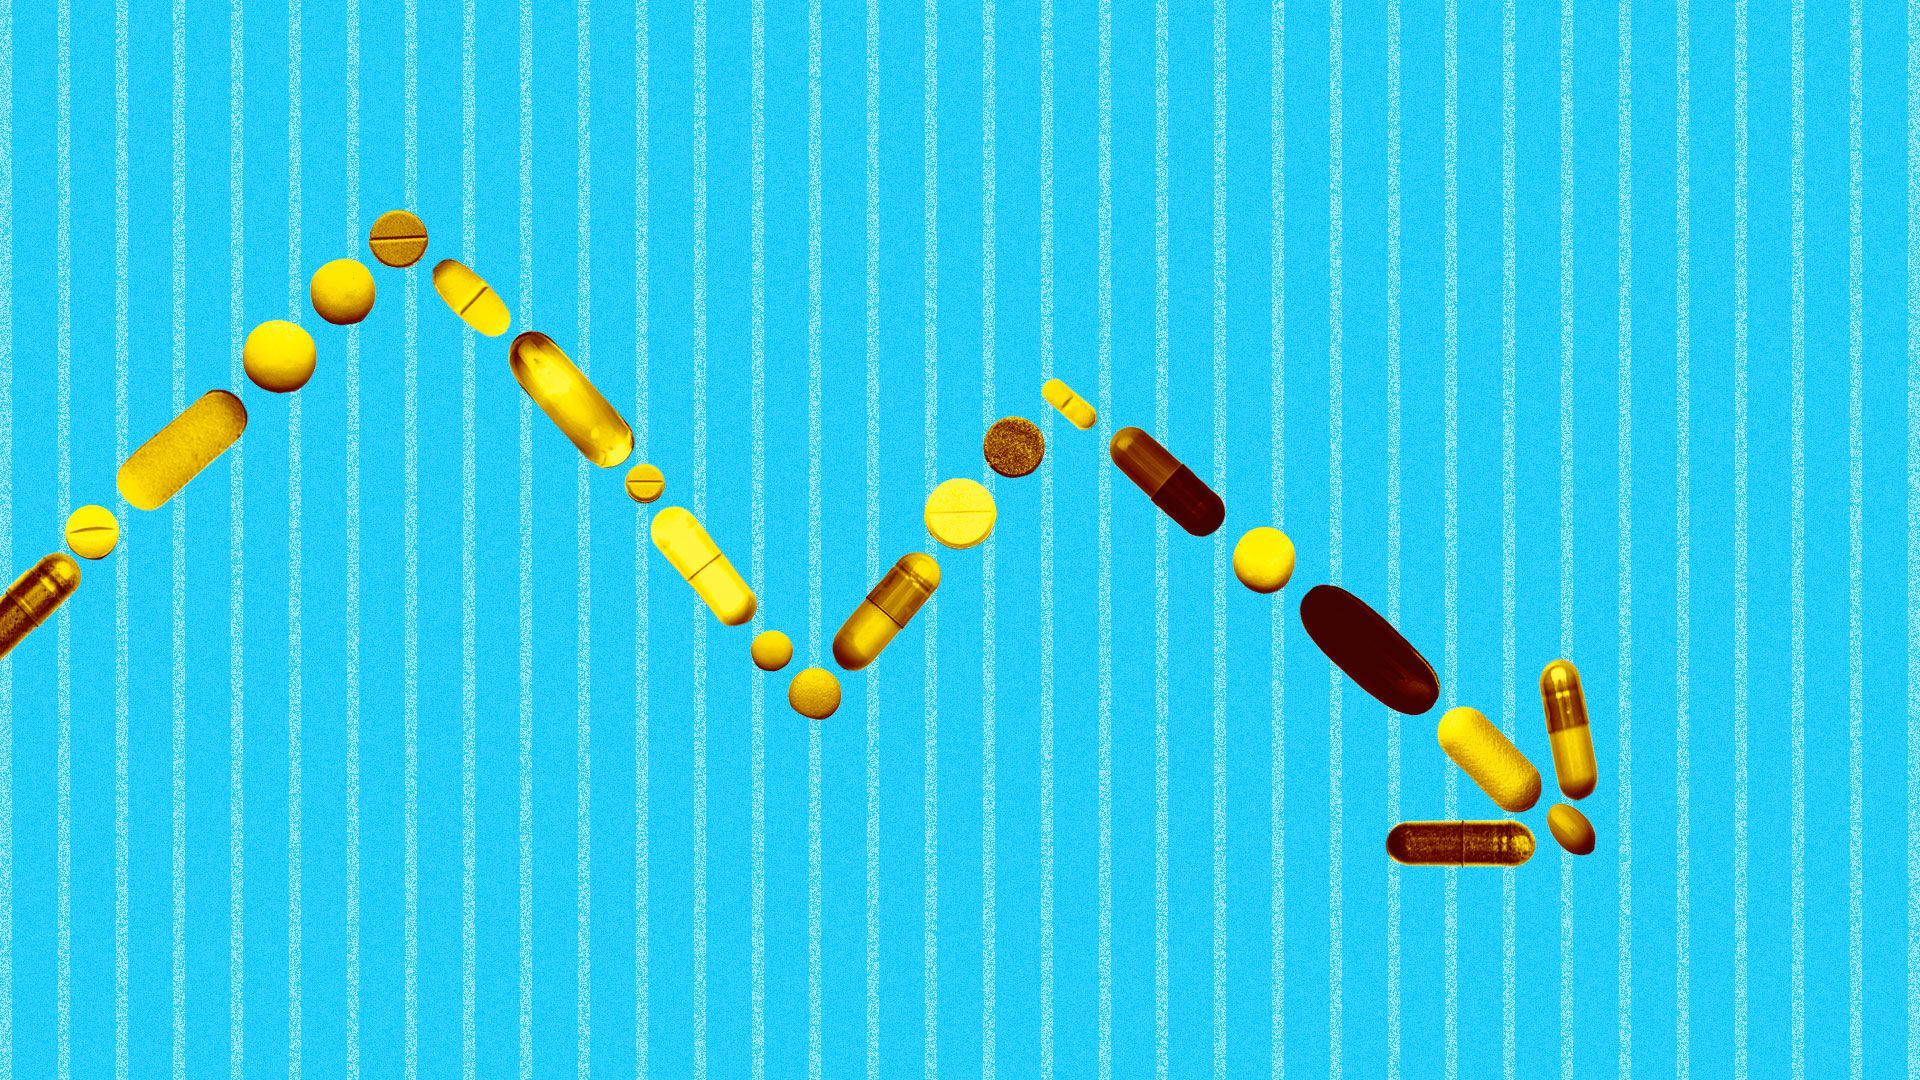 Illustration of a downward market trend line made up of golden pills.